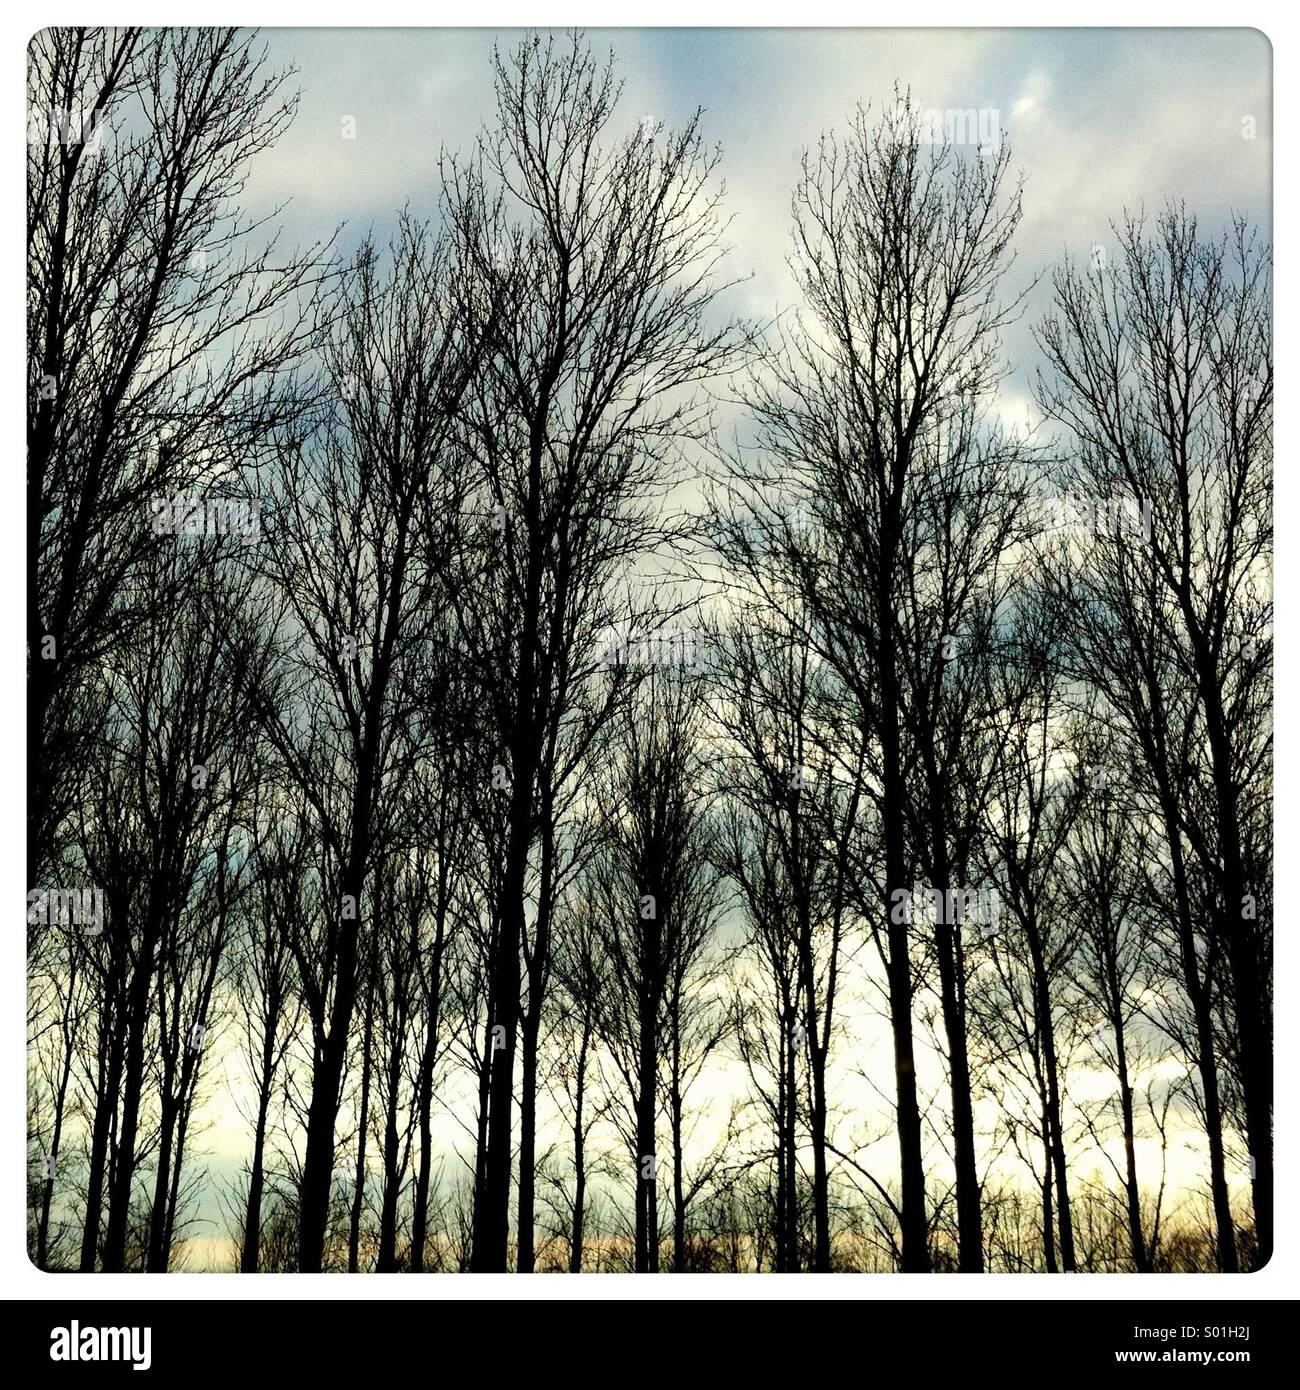 Silhouette of looming wintery trees against the sky at dusk - Stock Image